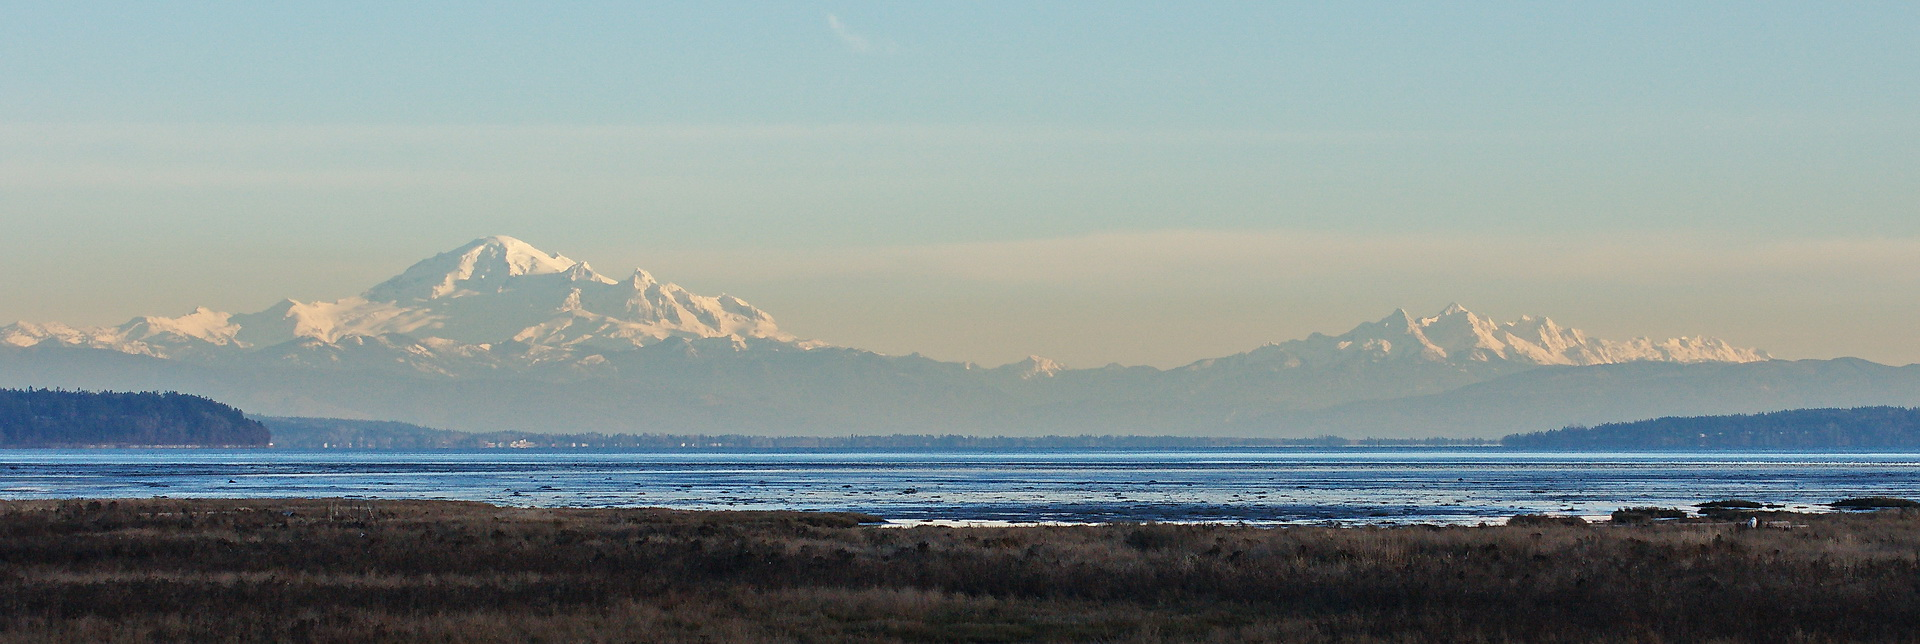 Mt. Baker and a range of the Twins and Sisters in Washington state. L-R North Twin, South Twin, Hayden Peak, Little Sister, Twin Sisters.